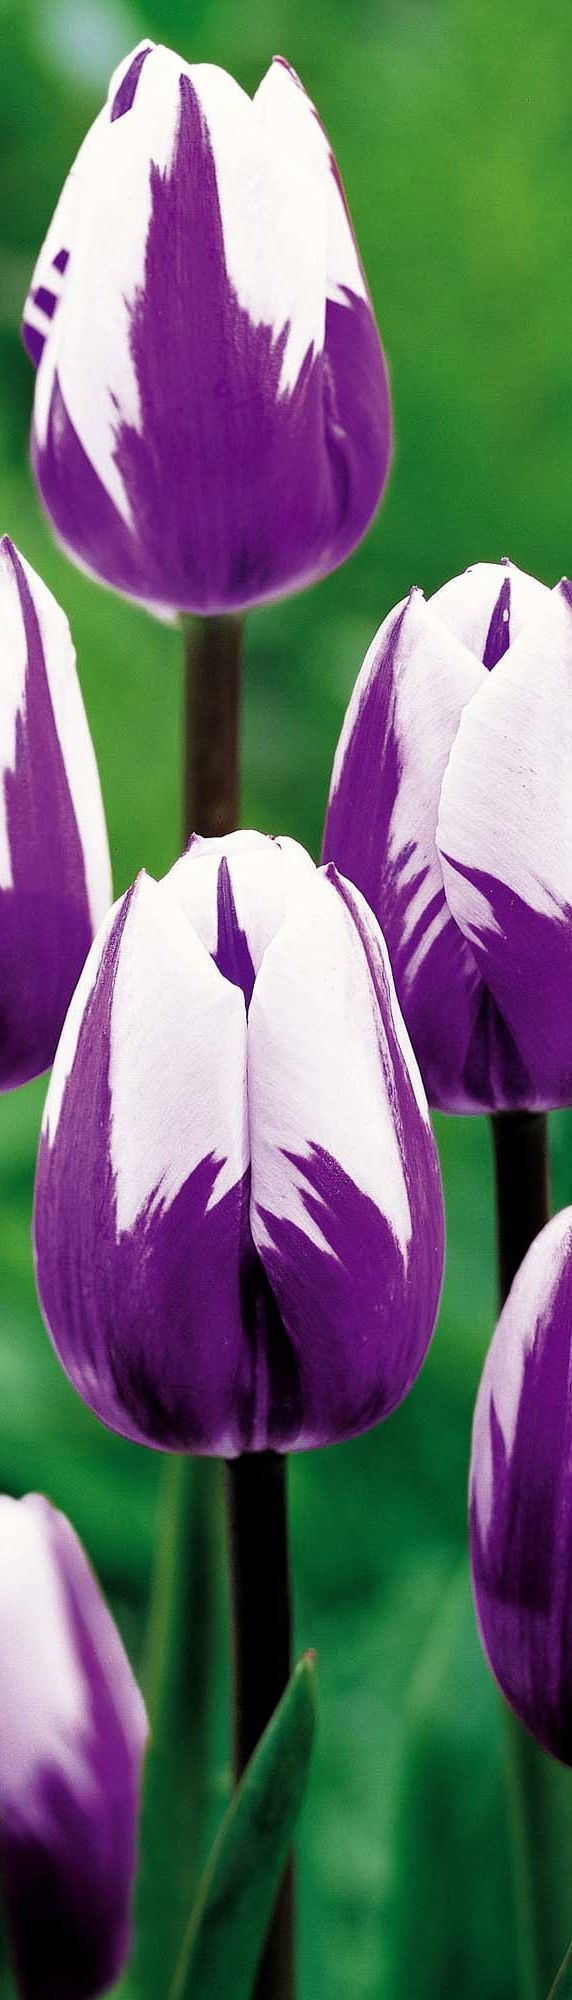 Found on media-cache-ec0 pinimg comPurple And White Tulips